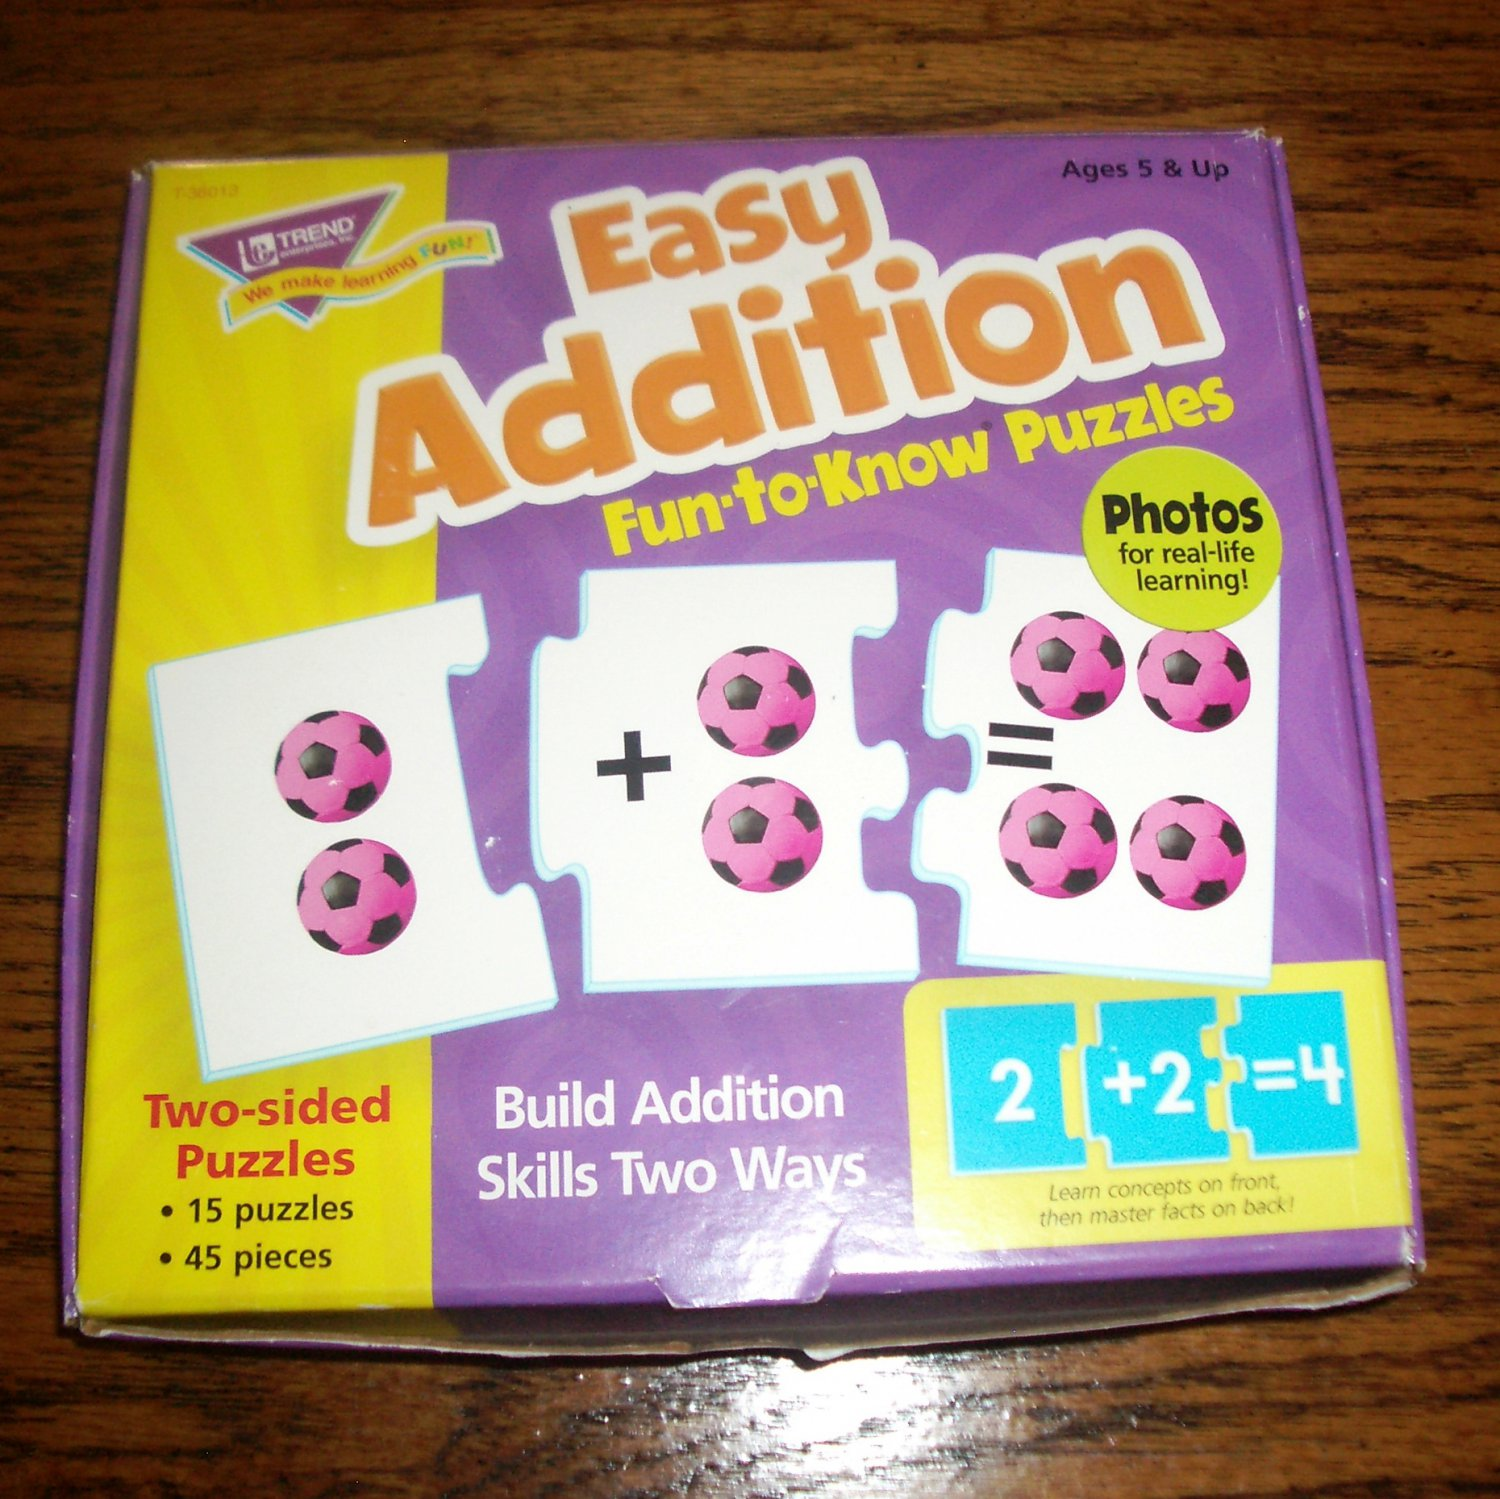 Easy Addition Fun-to-Know Puzzles Addition Skills Builder Ages 5+